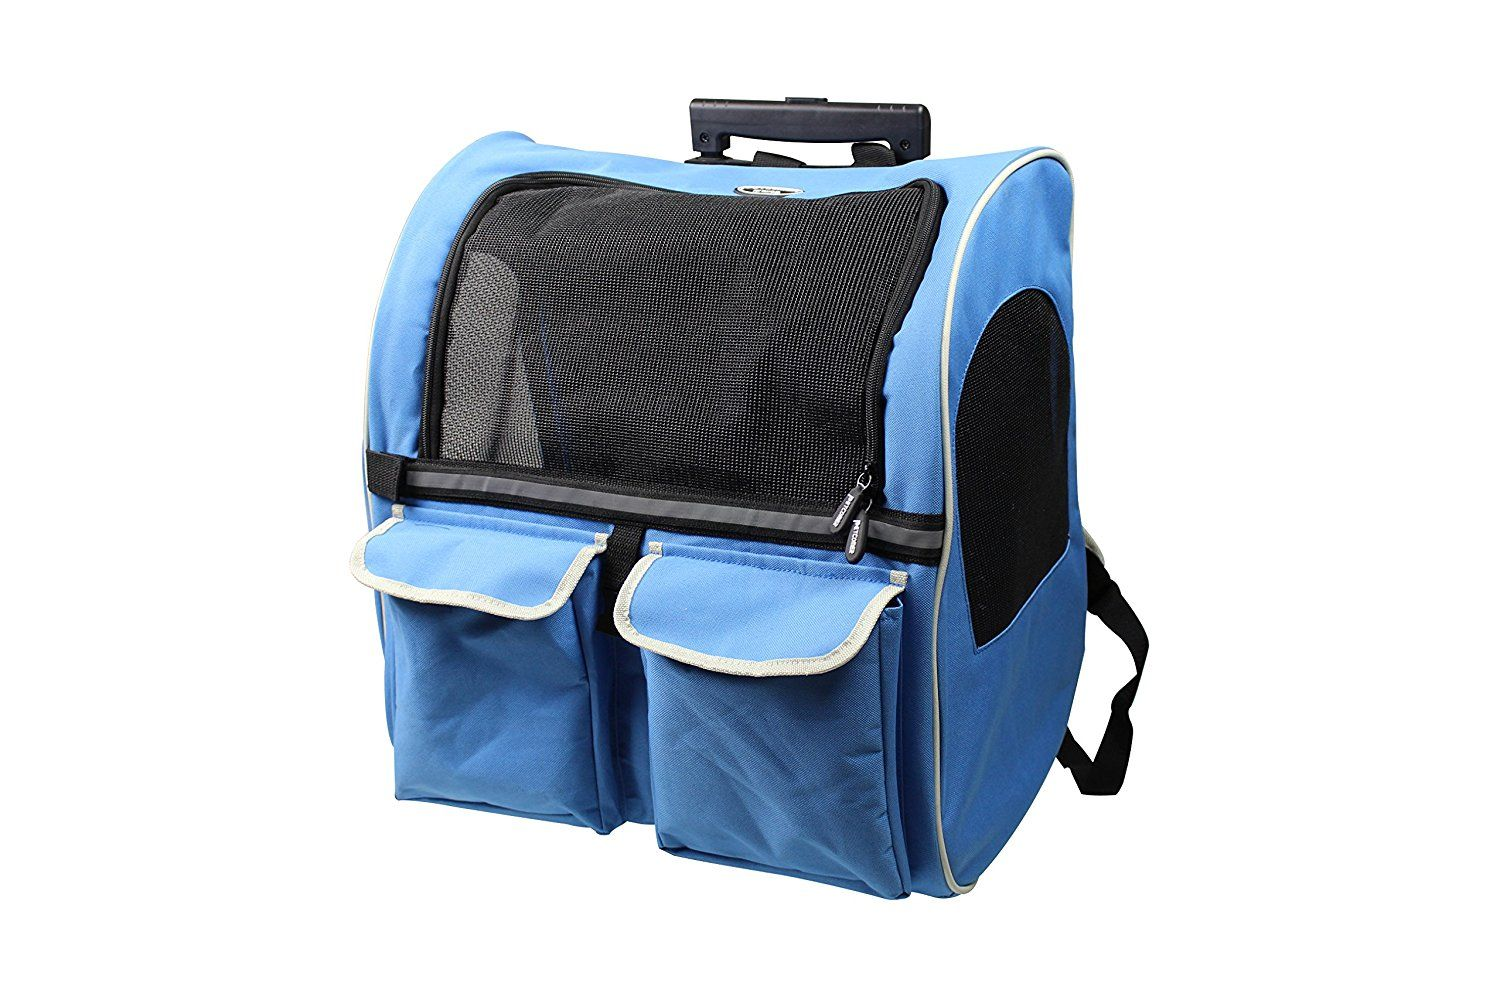 Pettom Roll Around 4 In 1 Pet Carrier Travel Backpack For Dogs And Catsandsmall Animals Travel Tote Airline A Pet Backpack Carrier Dog Carrier Bag Pet Backpack